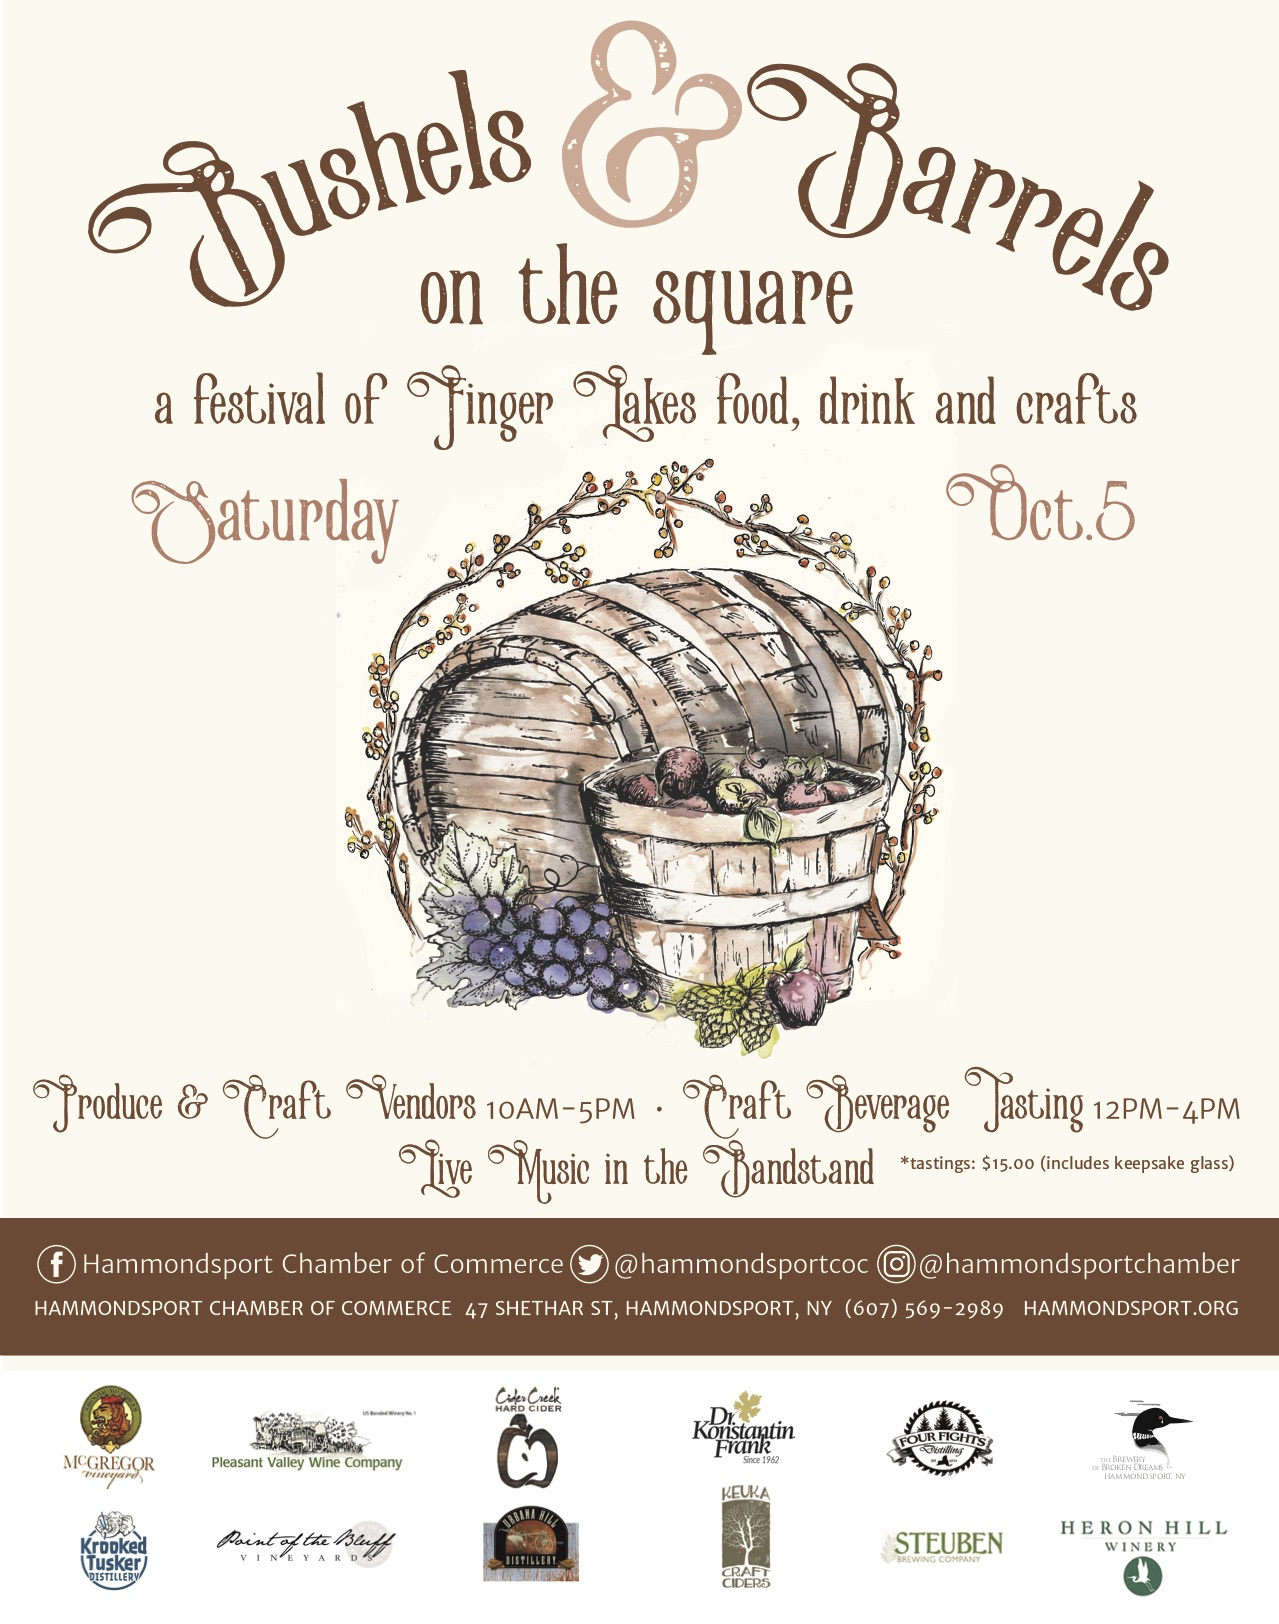 Bushels & Barrels on the Square is on Saturday, October 5th!